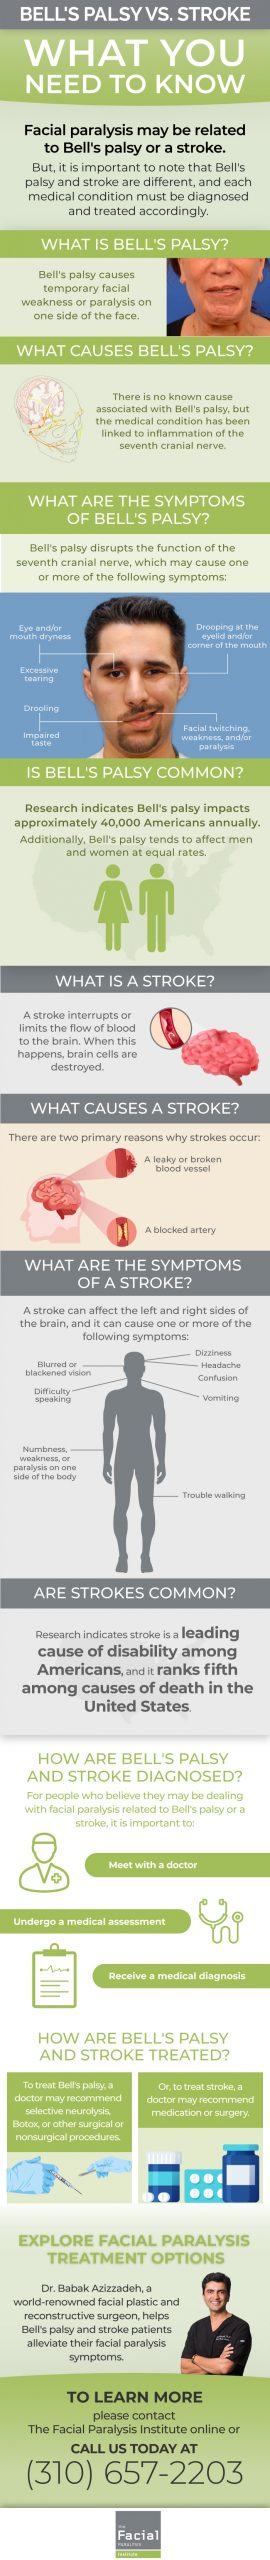 Bells Palsy versus a stroke infographic